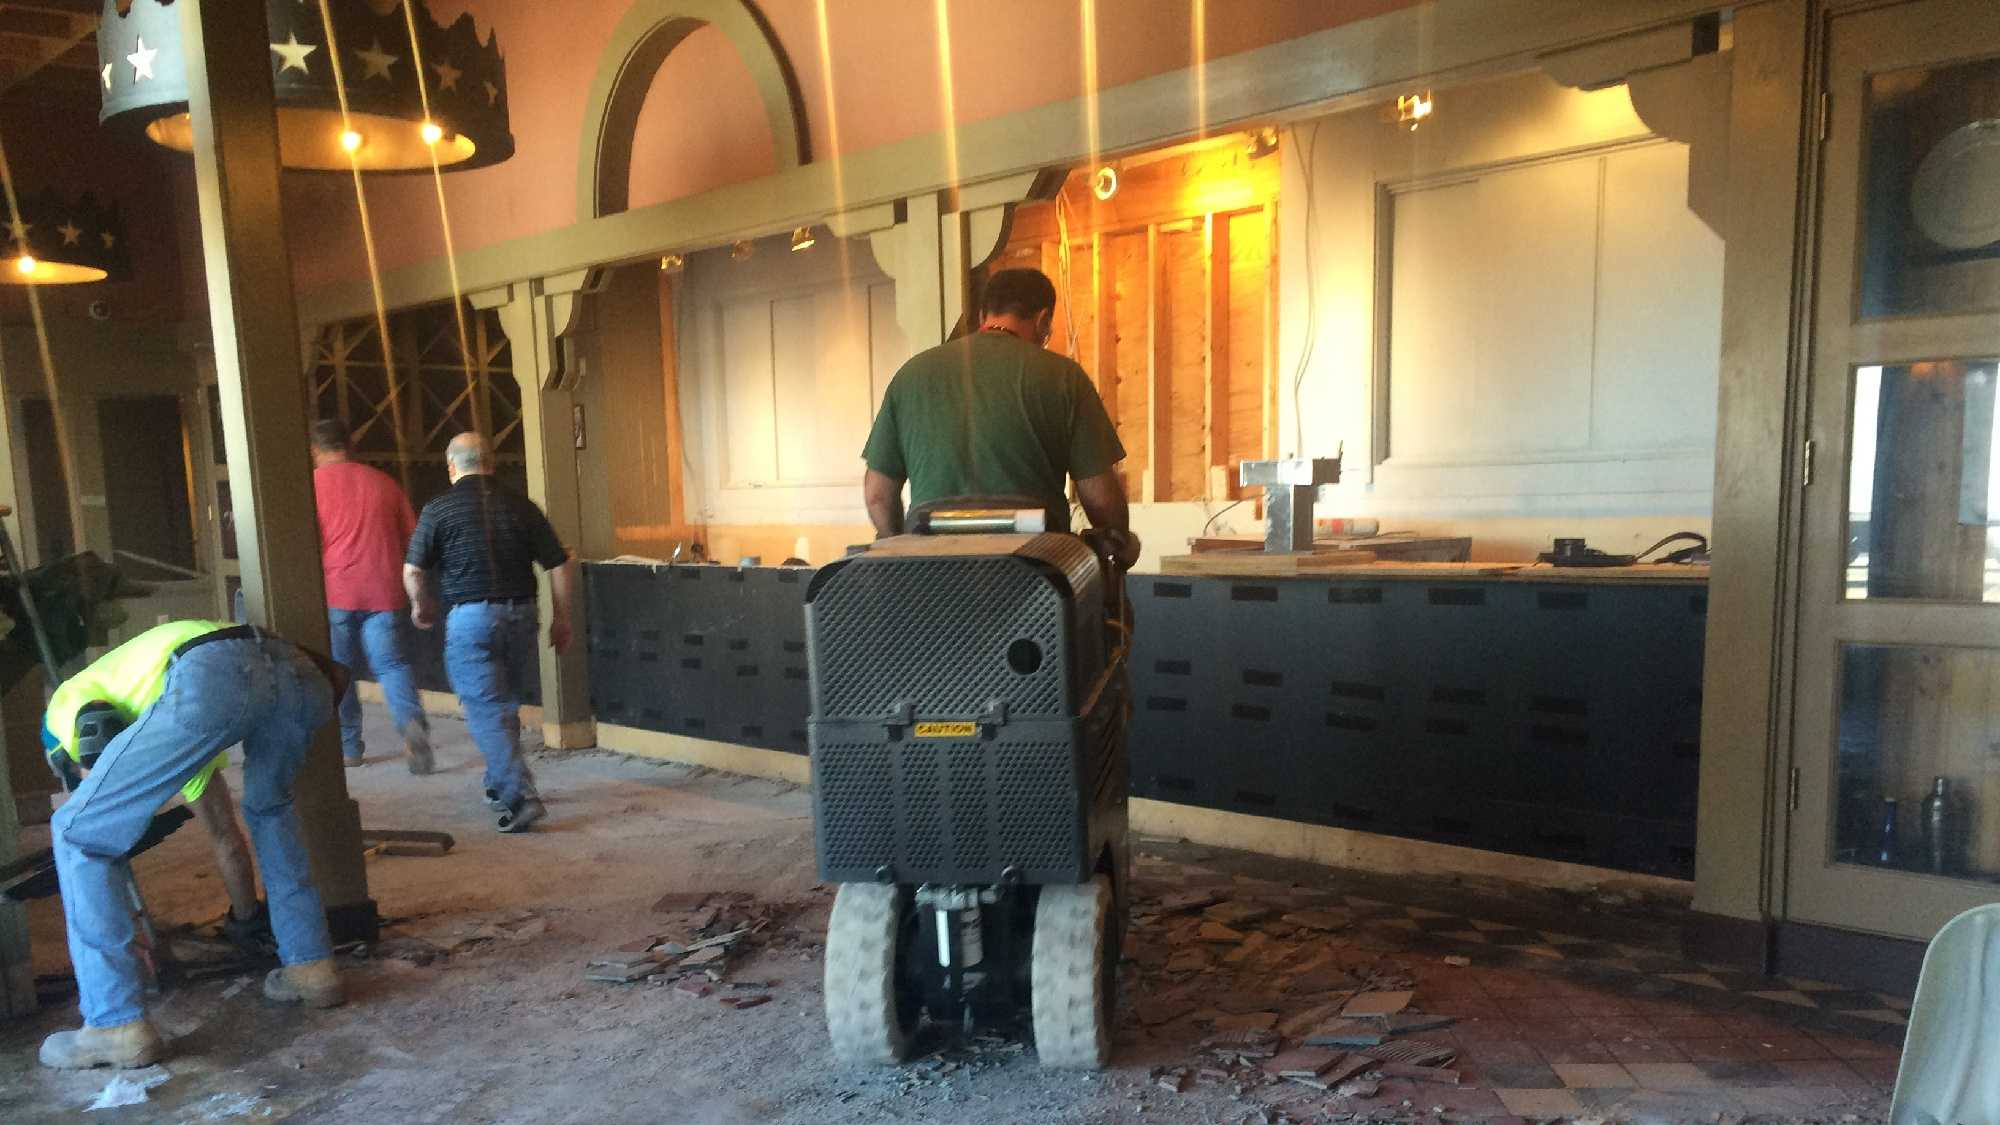 CityRange Steakhouse begins renovations expected to take about two weeks